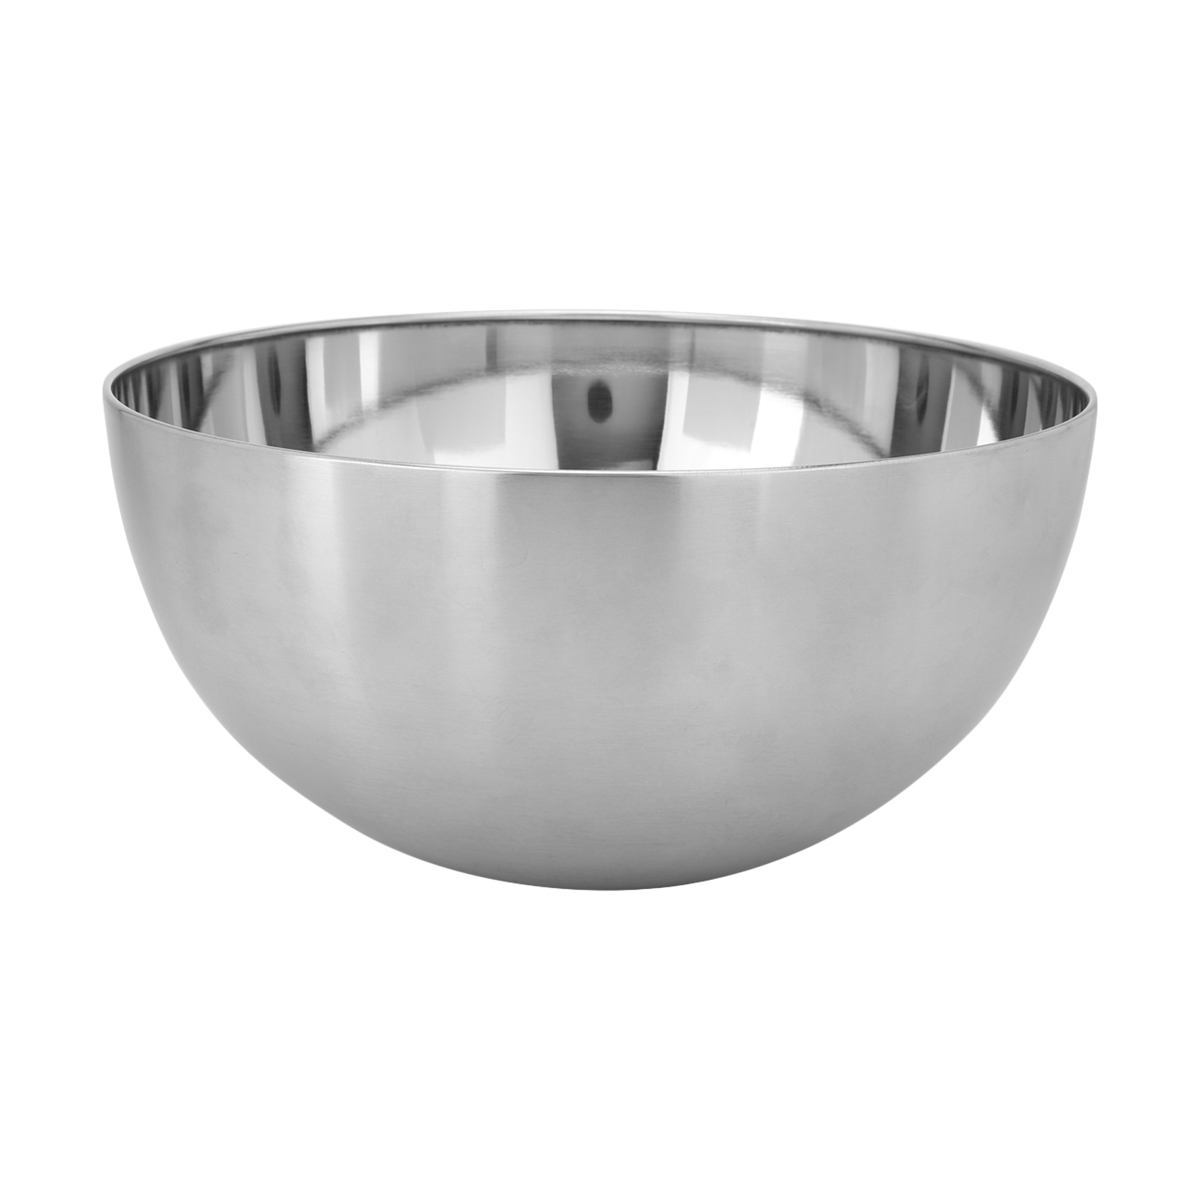 Stainless Steel Salad Bowl Kmart Bowl, Wooden salad